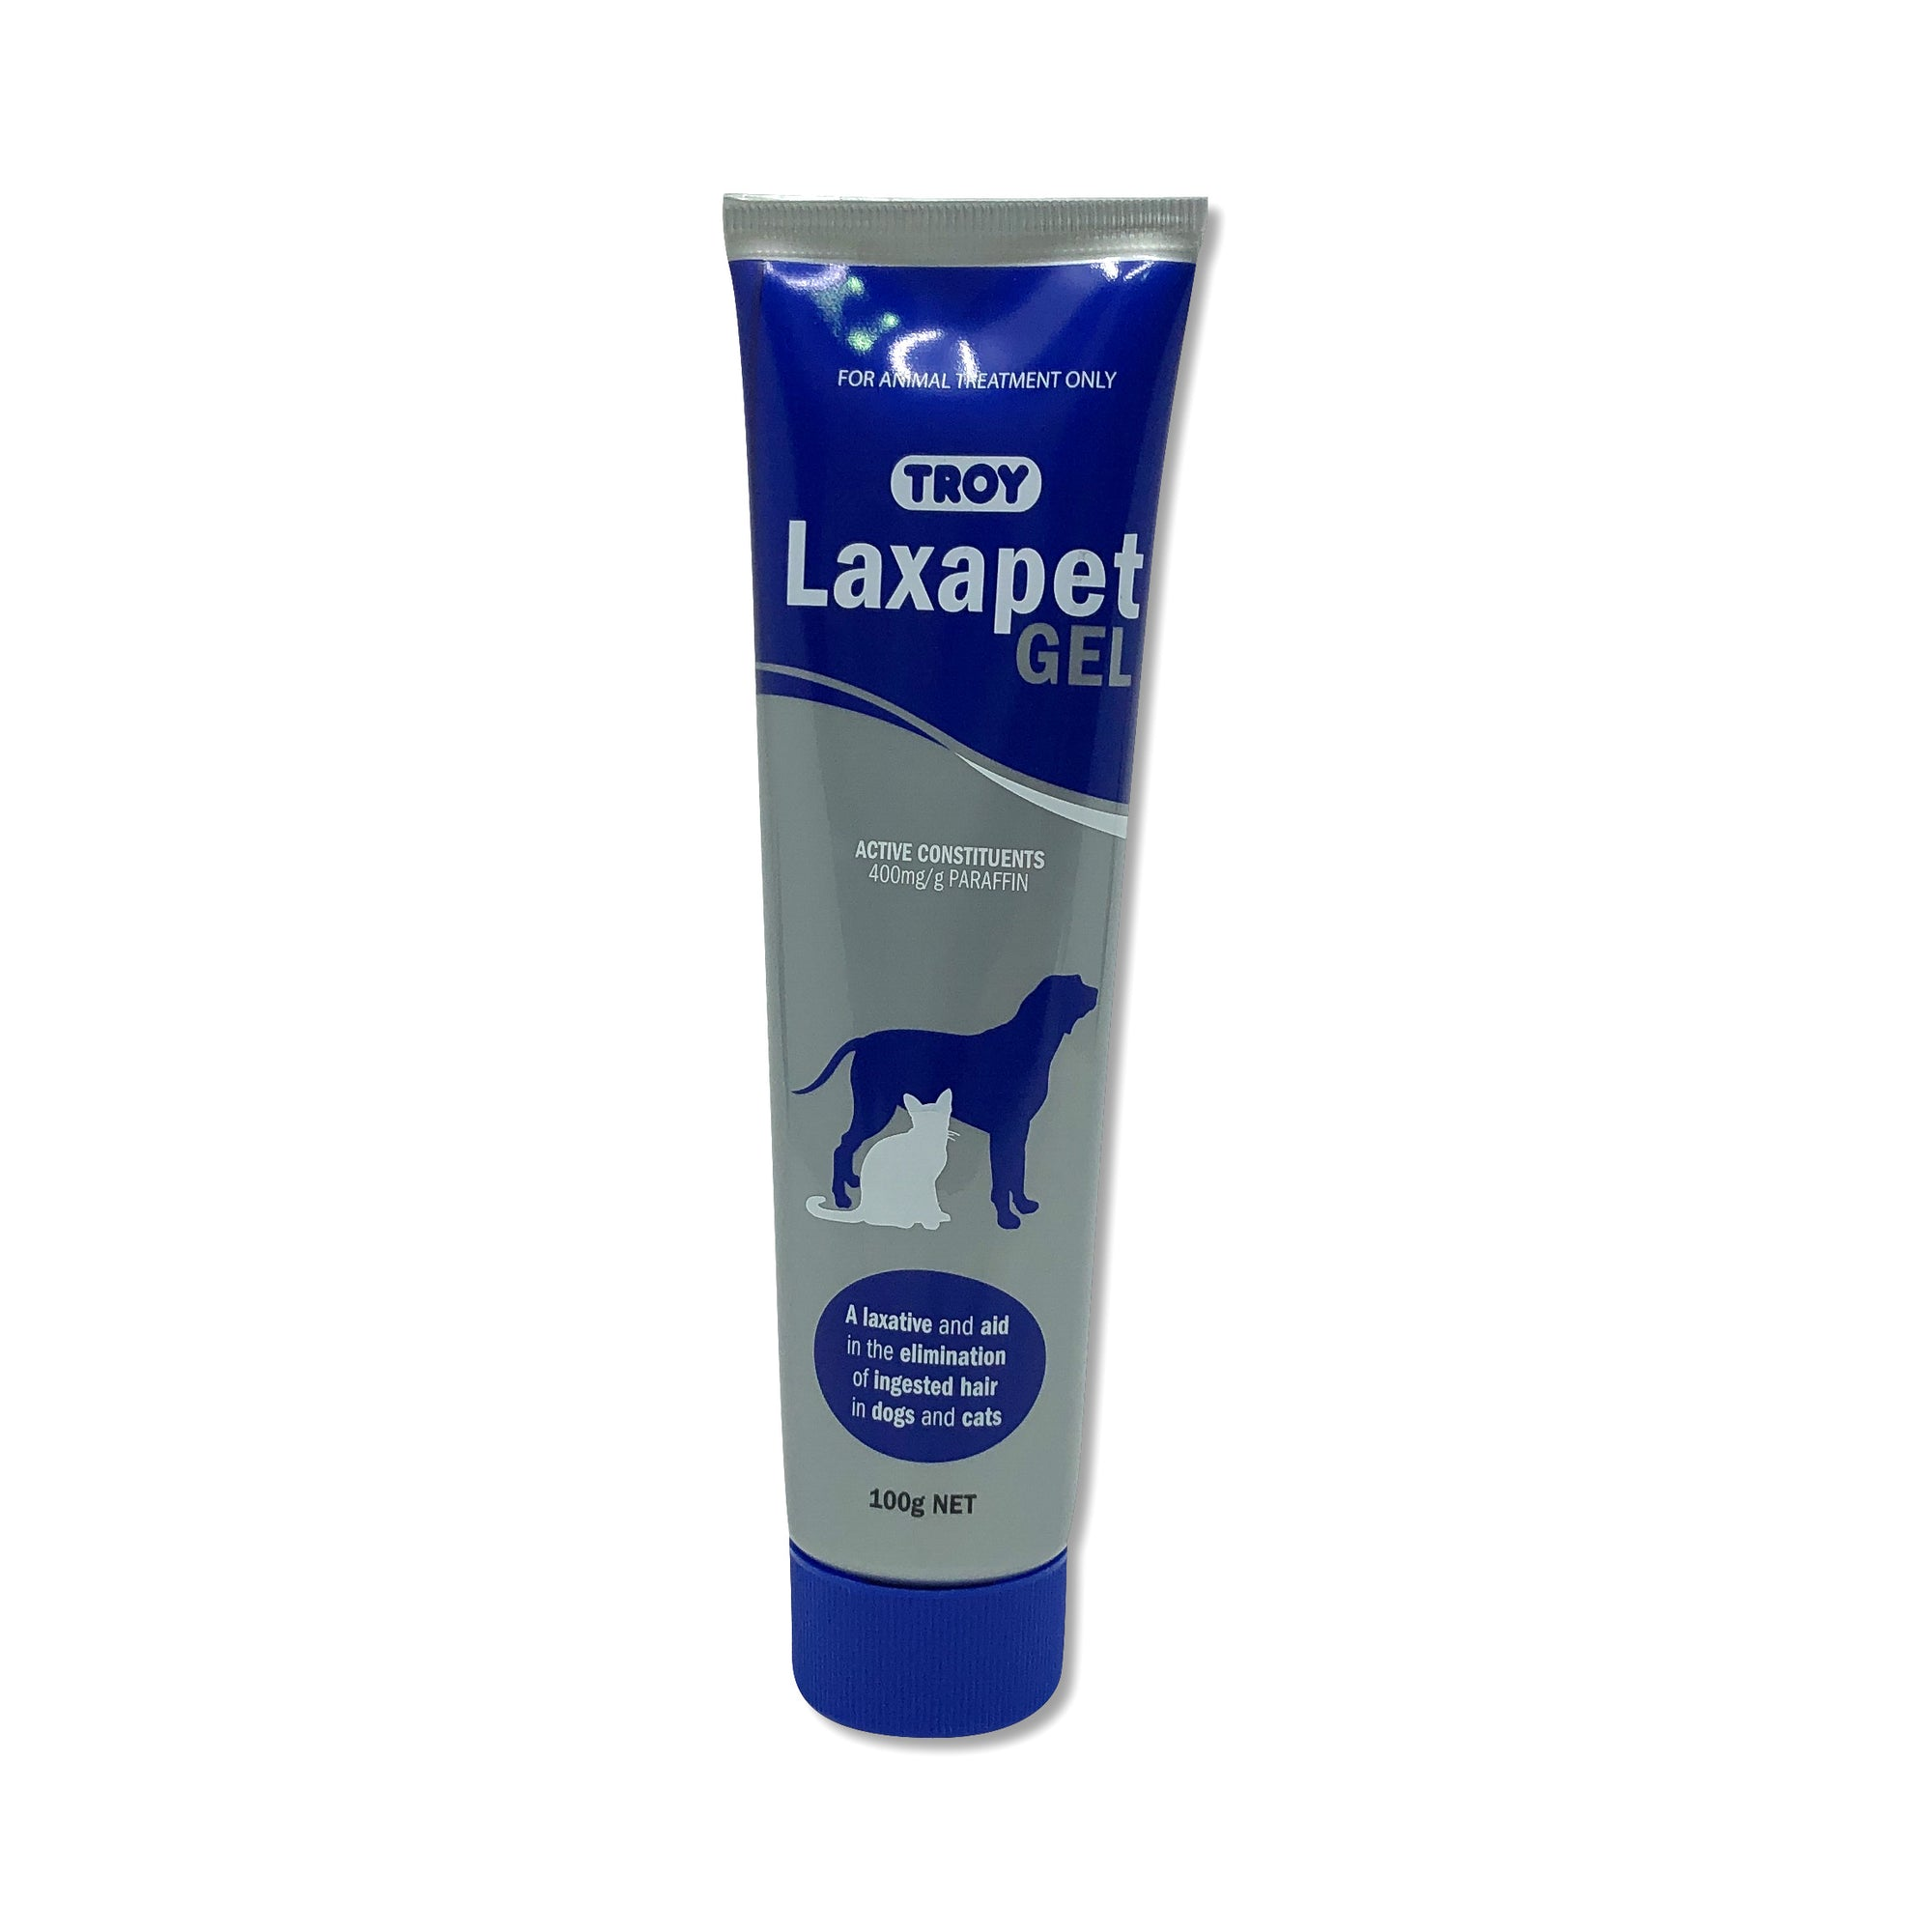 Laxapet Laxative Gel 100g